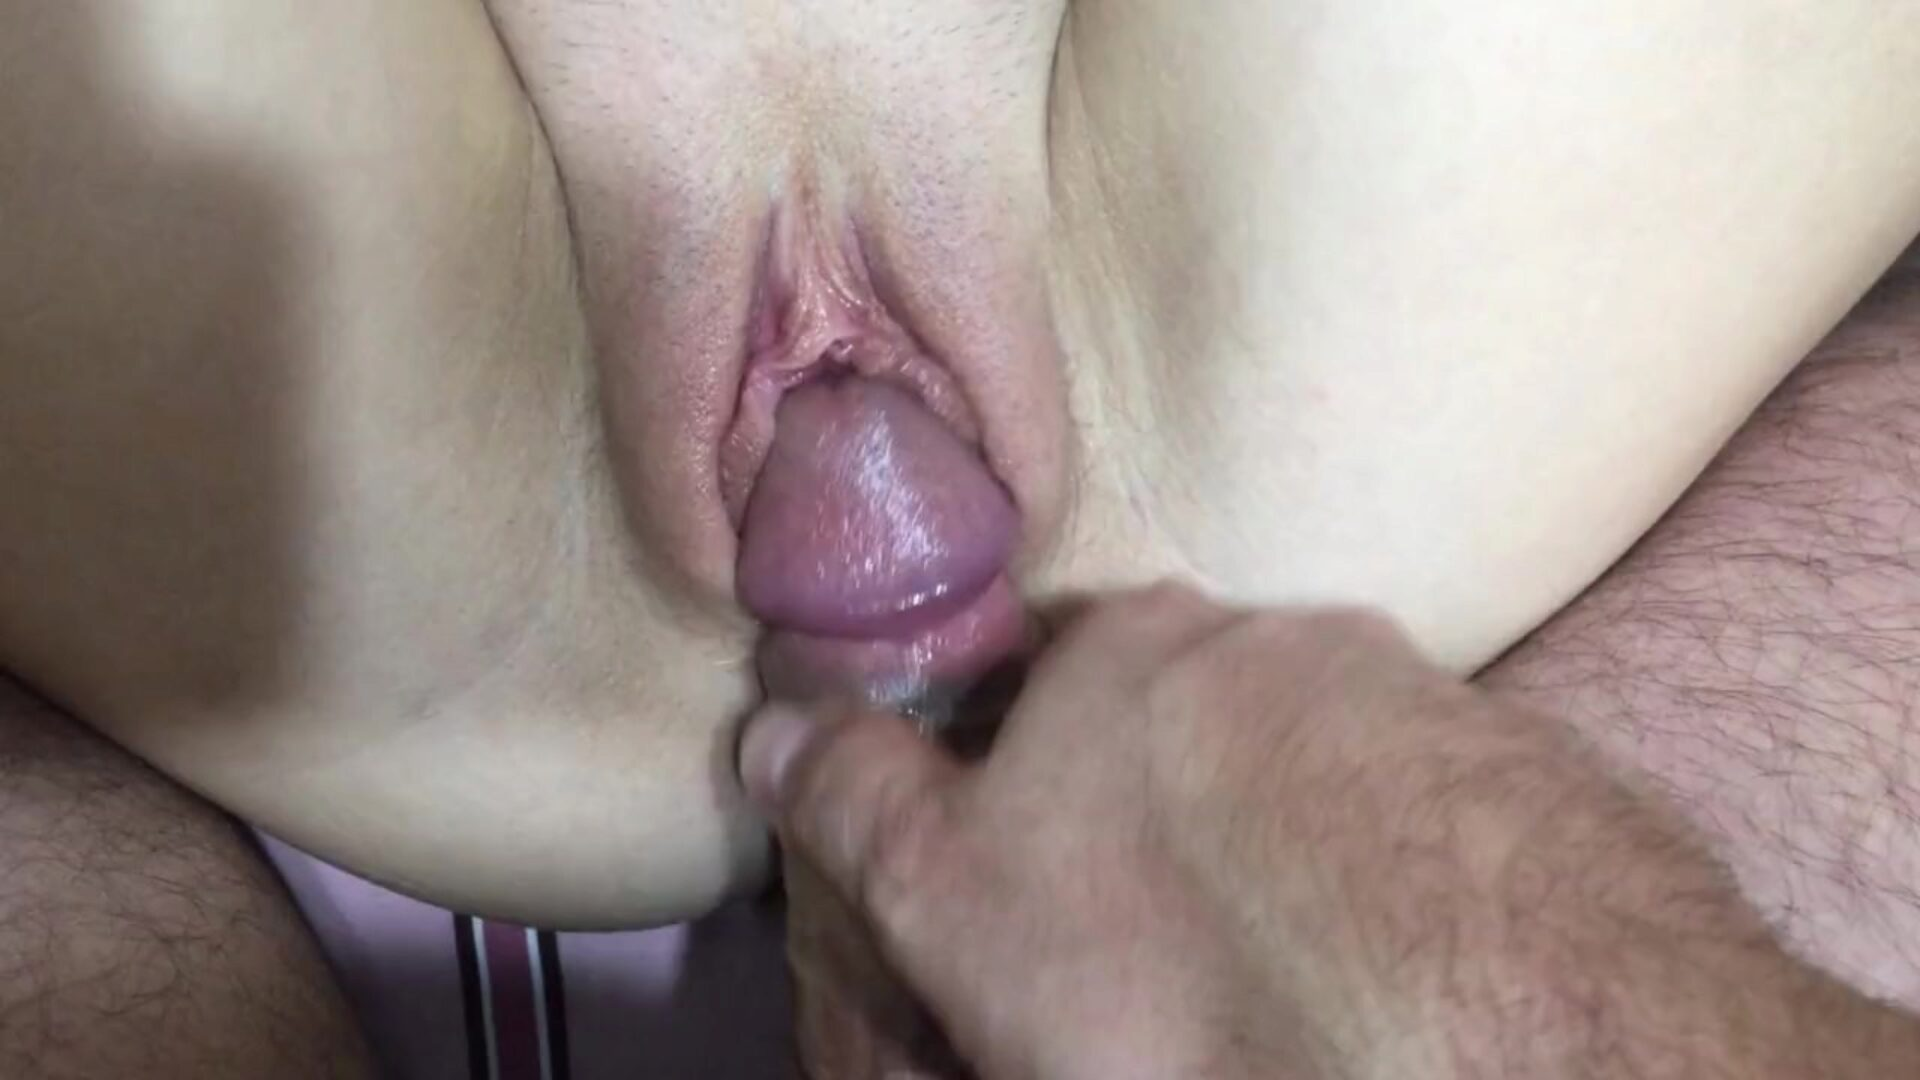 Very Close up Pussy Tease, Slow Fuck and Cum on Pink Pussy Lips, so Cute